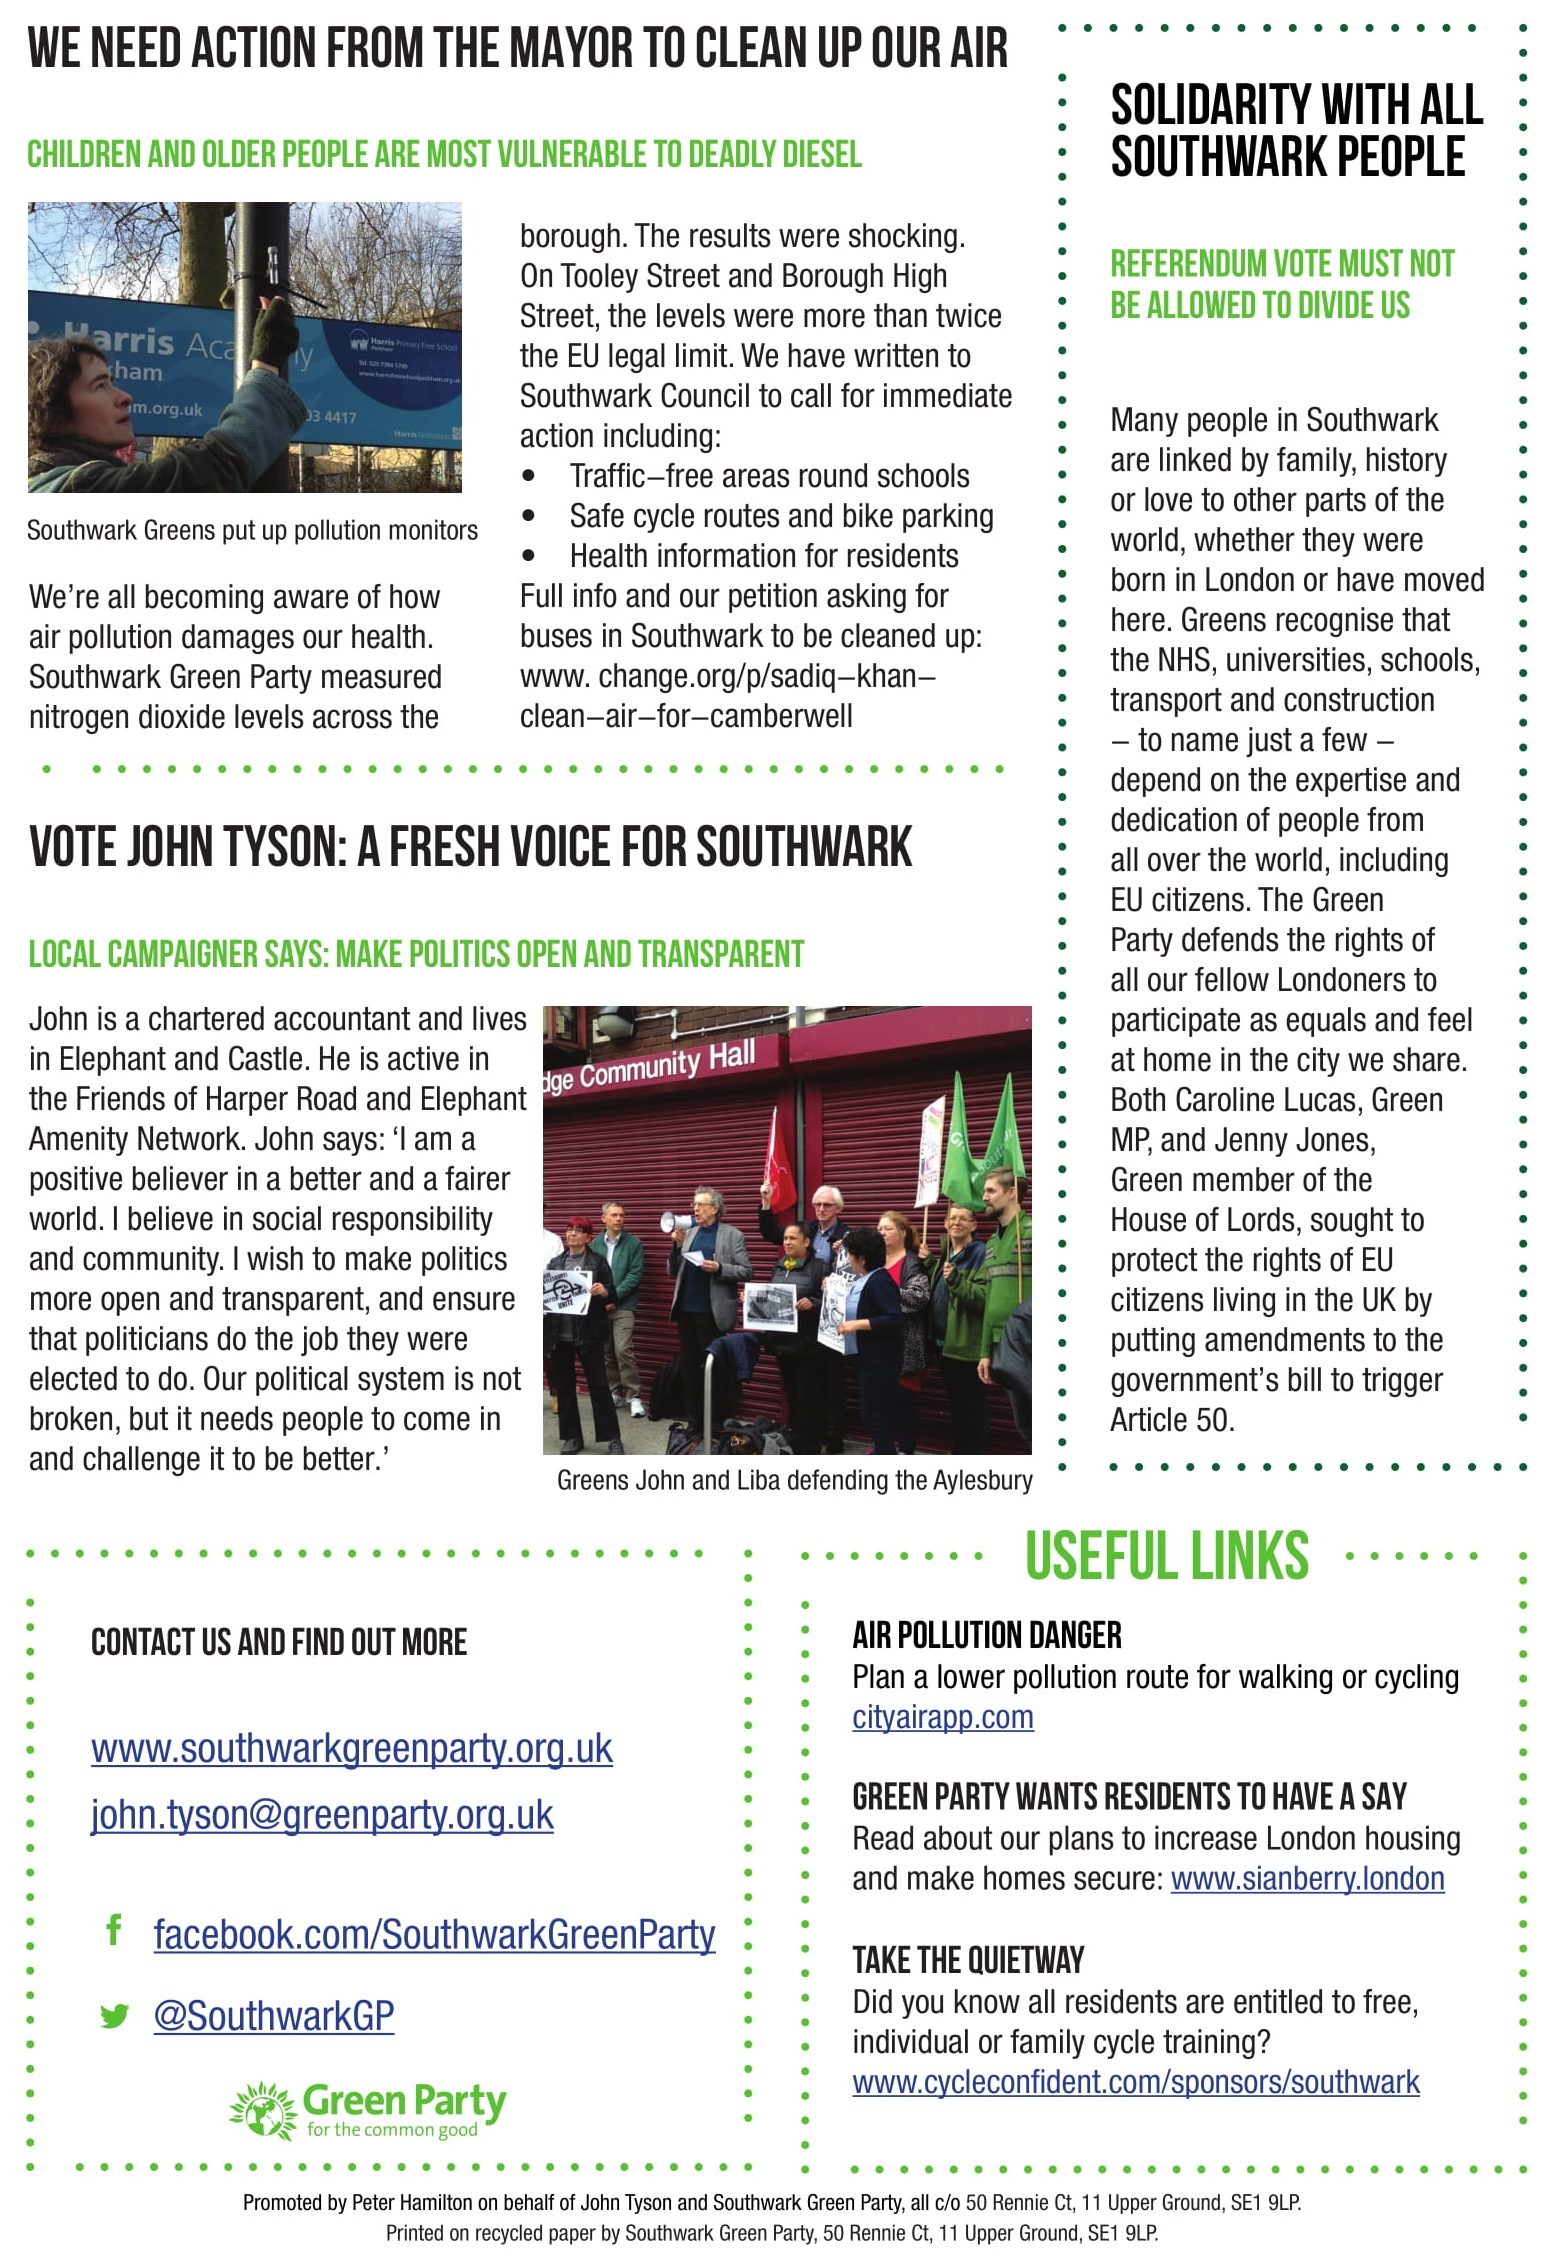 02b._Southwark_Green_News_May_2017-2.jpg